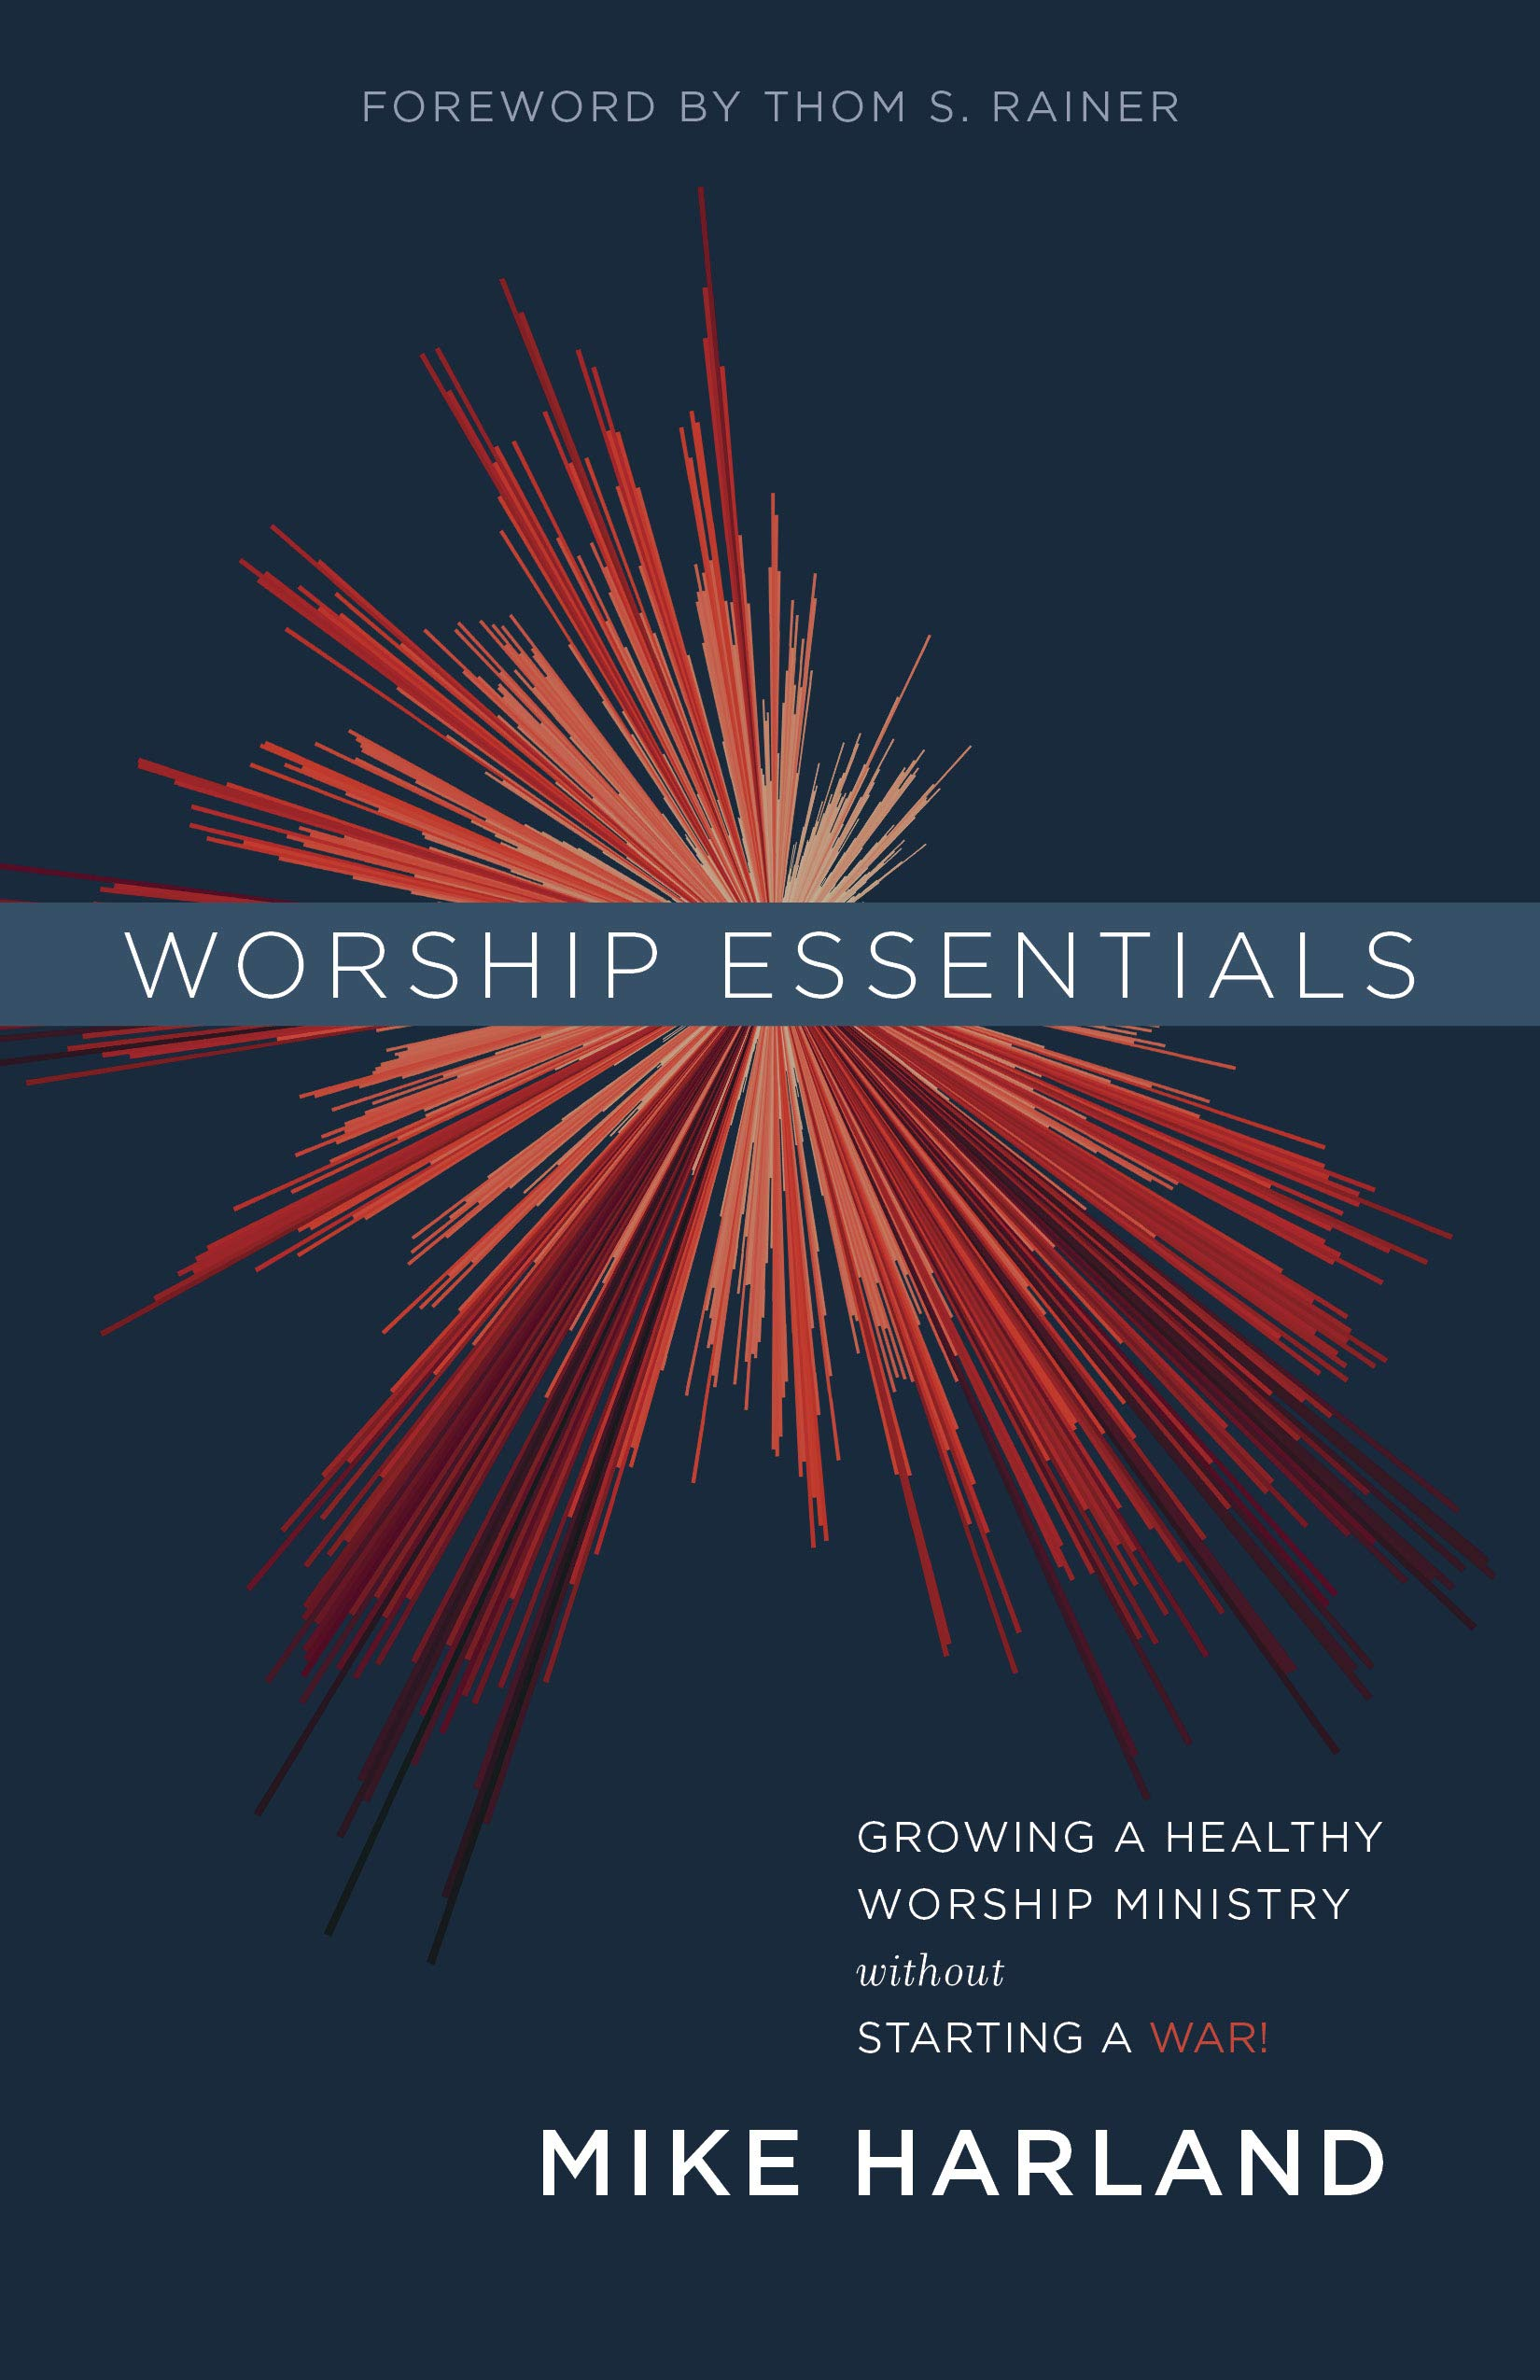 Worship Guitar Essentials in 2019 Writing software